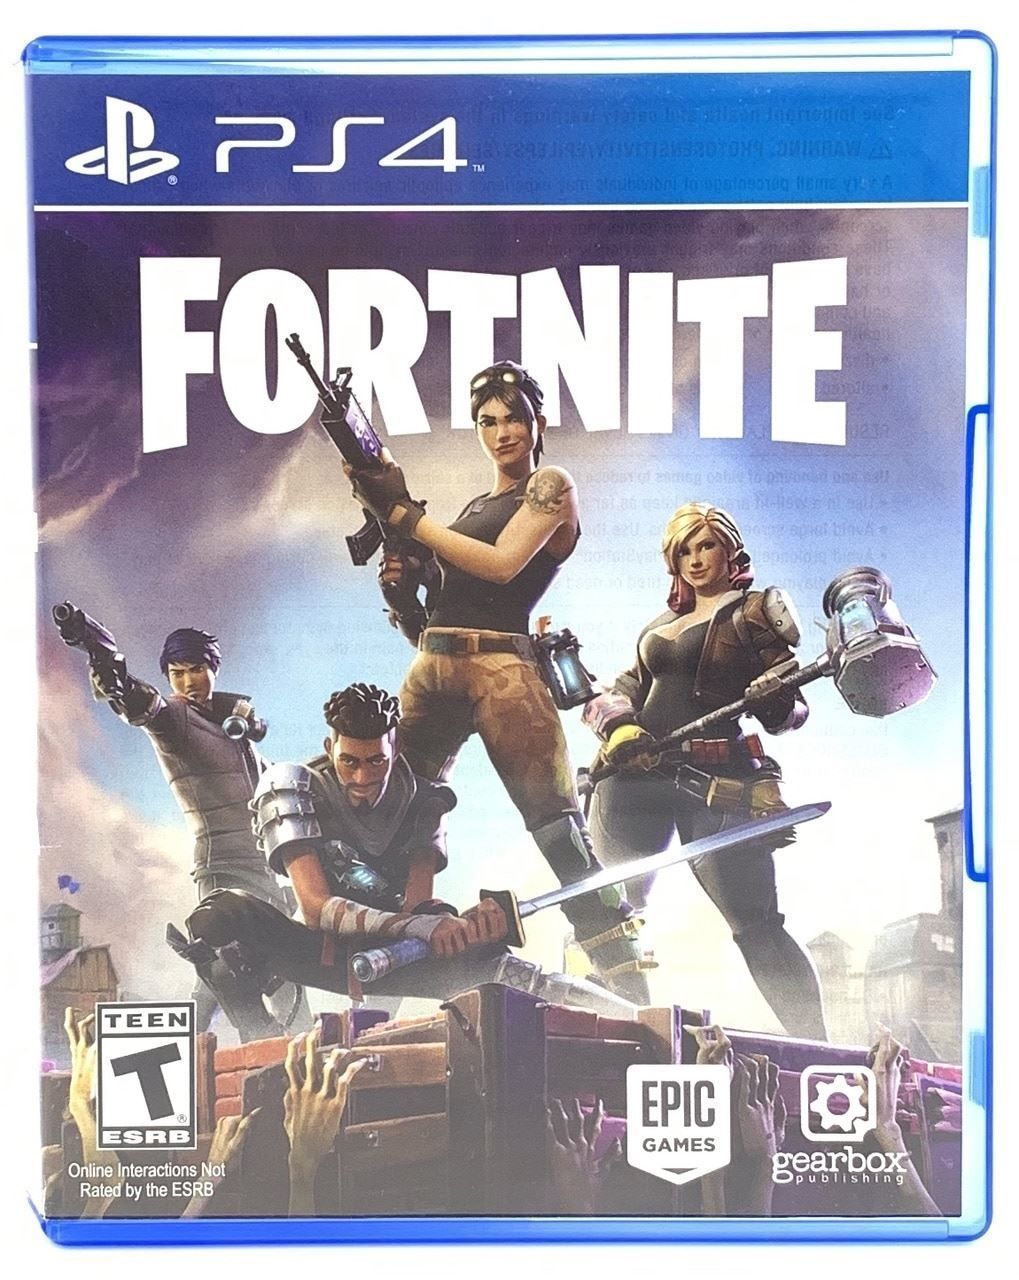 Fortnite Play Station 4 Physical Disk Used Mint Condition RARE we